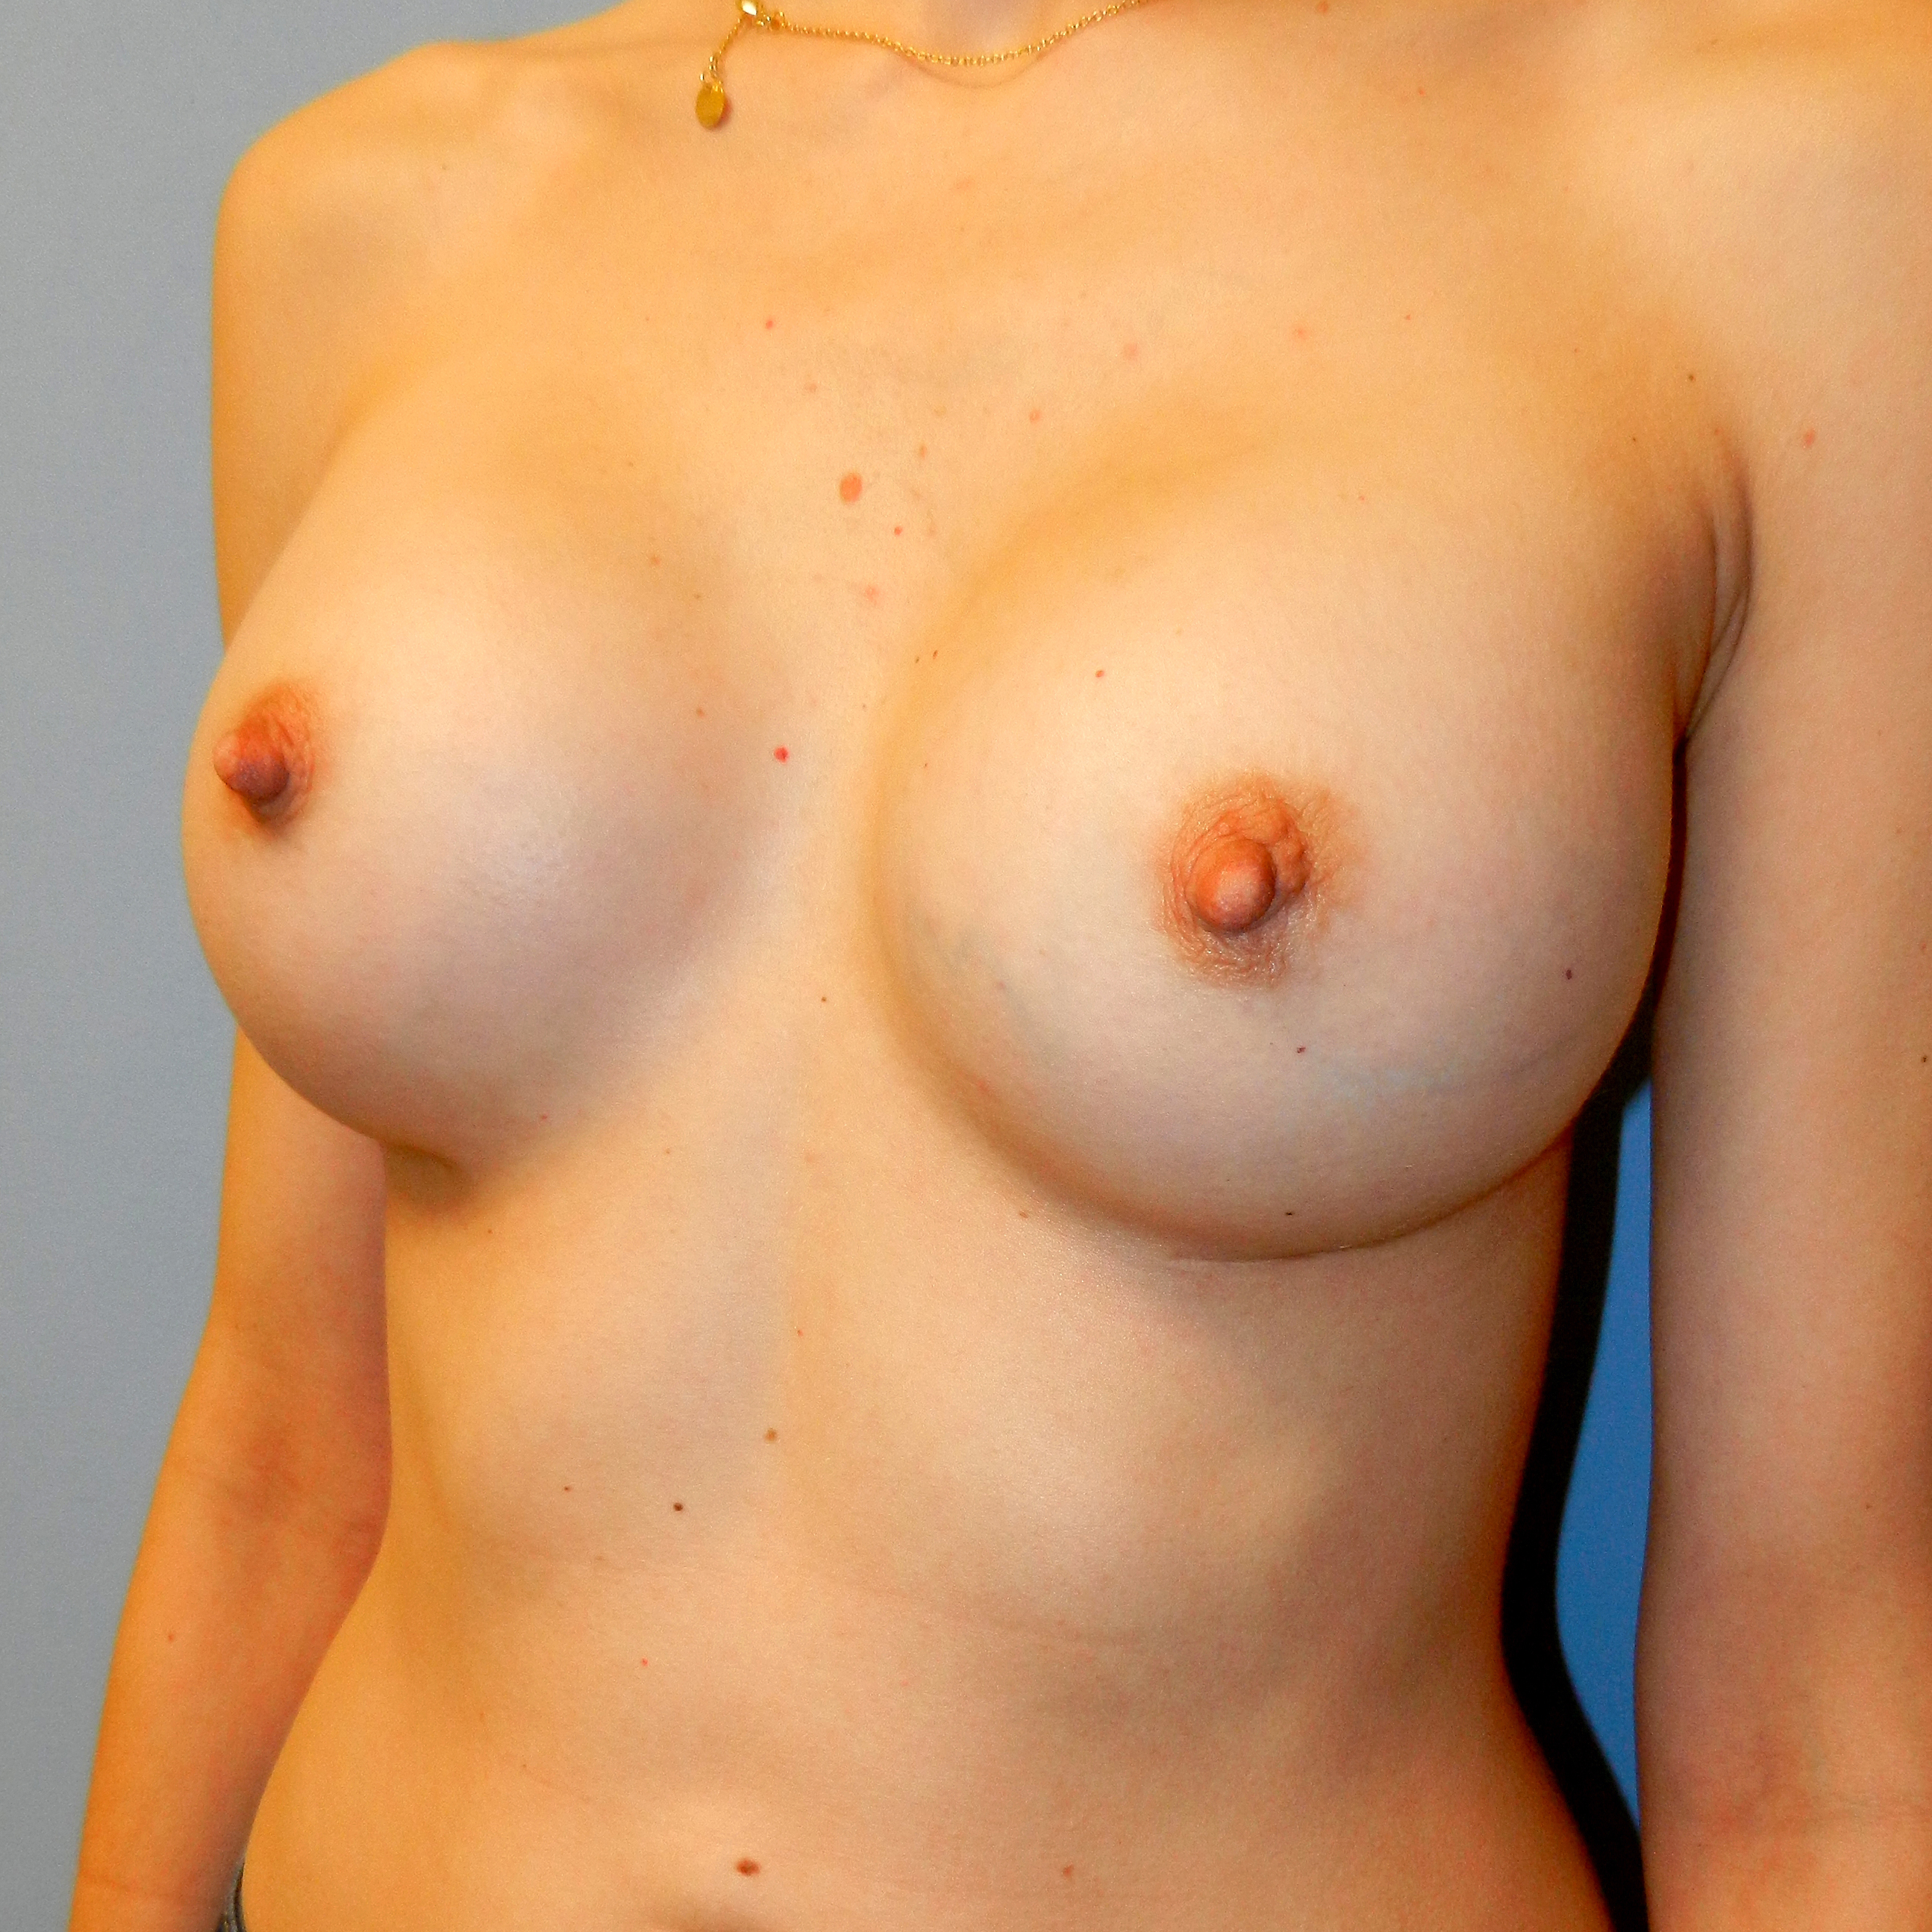 32 A to 32 Full C Breast Augmentation After Picture